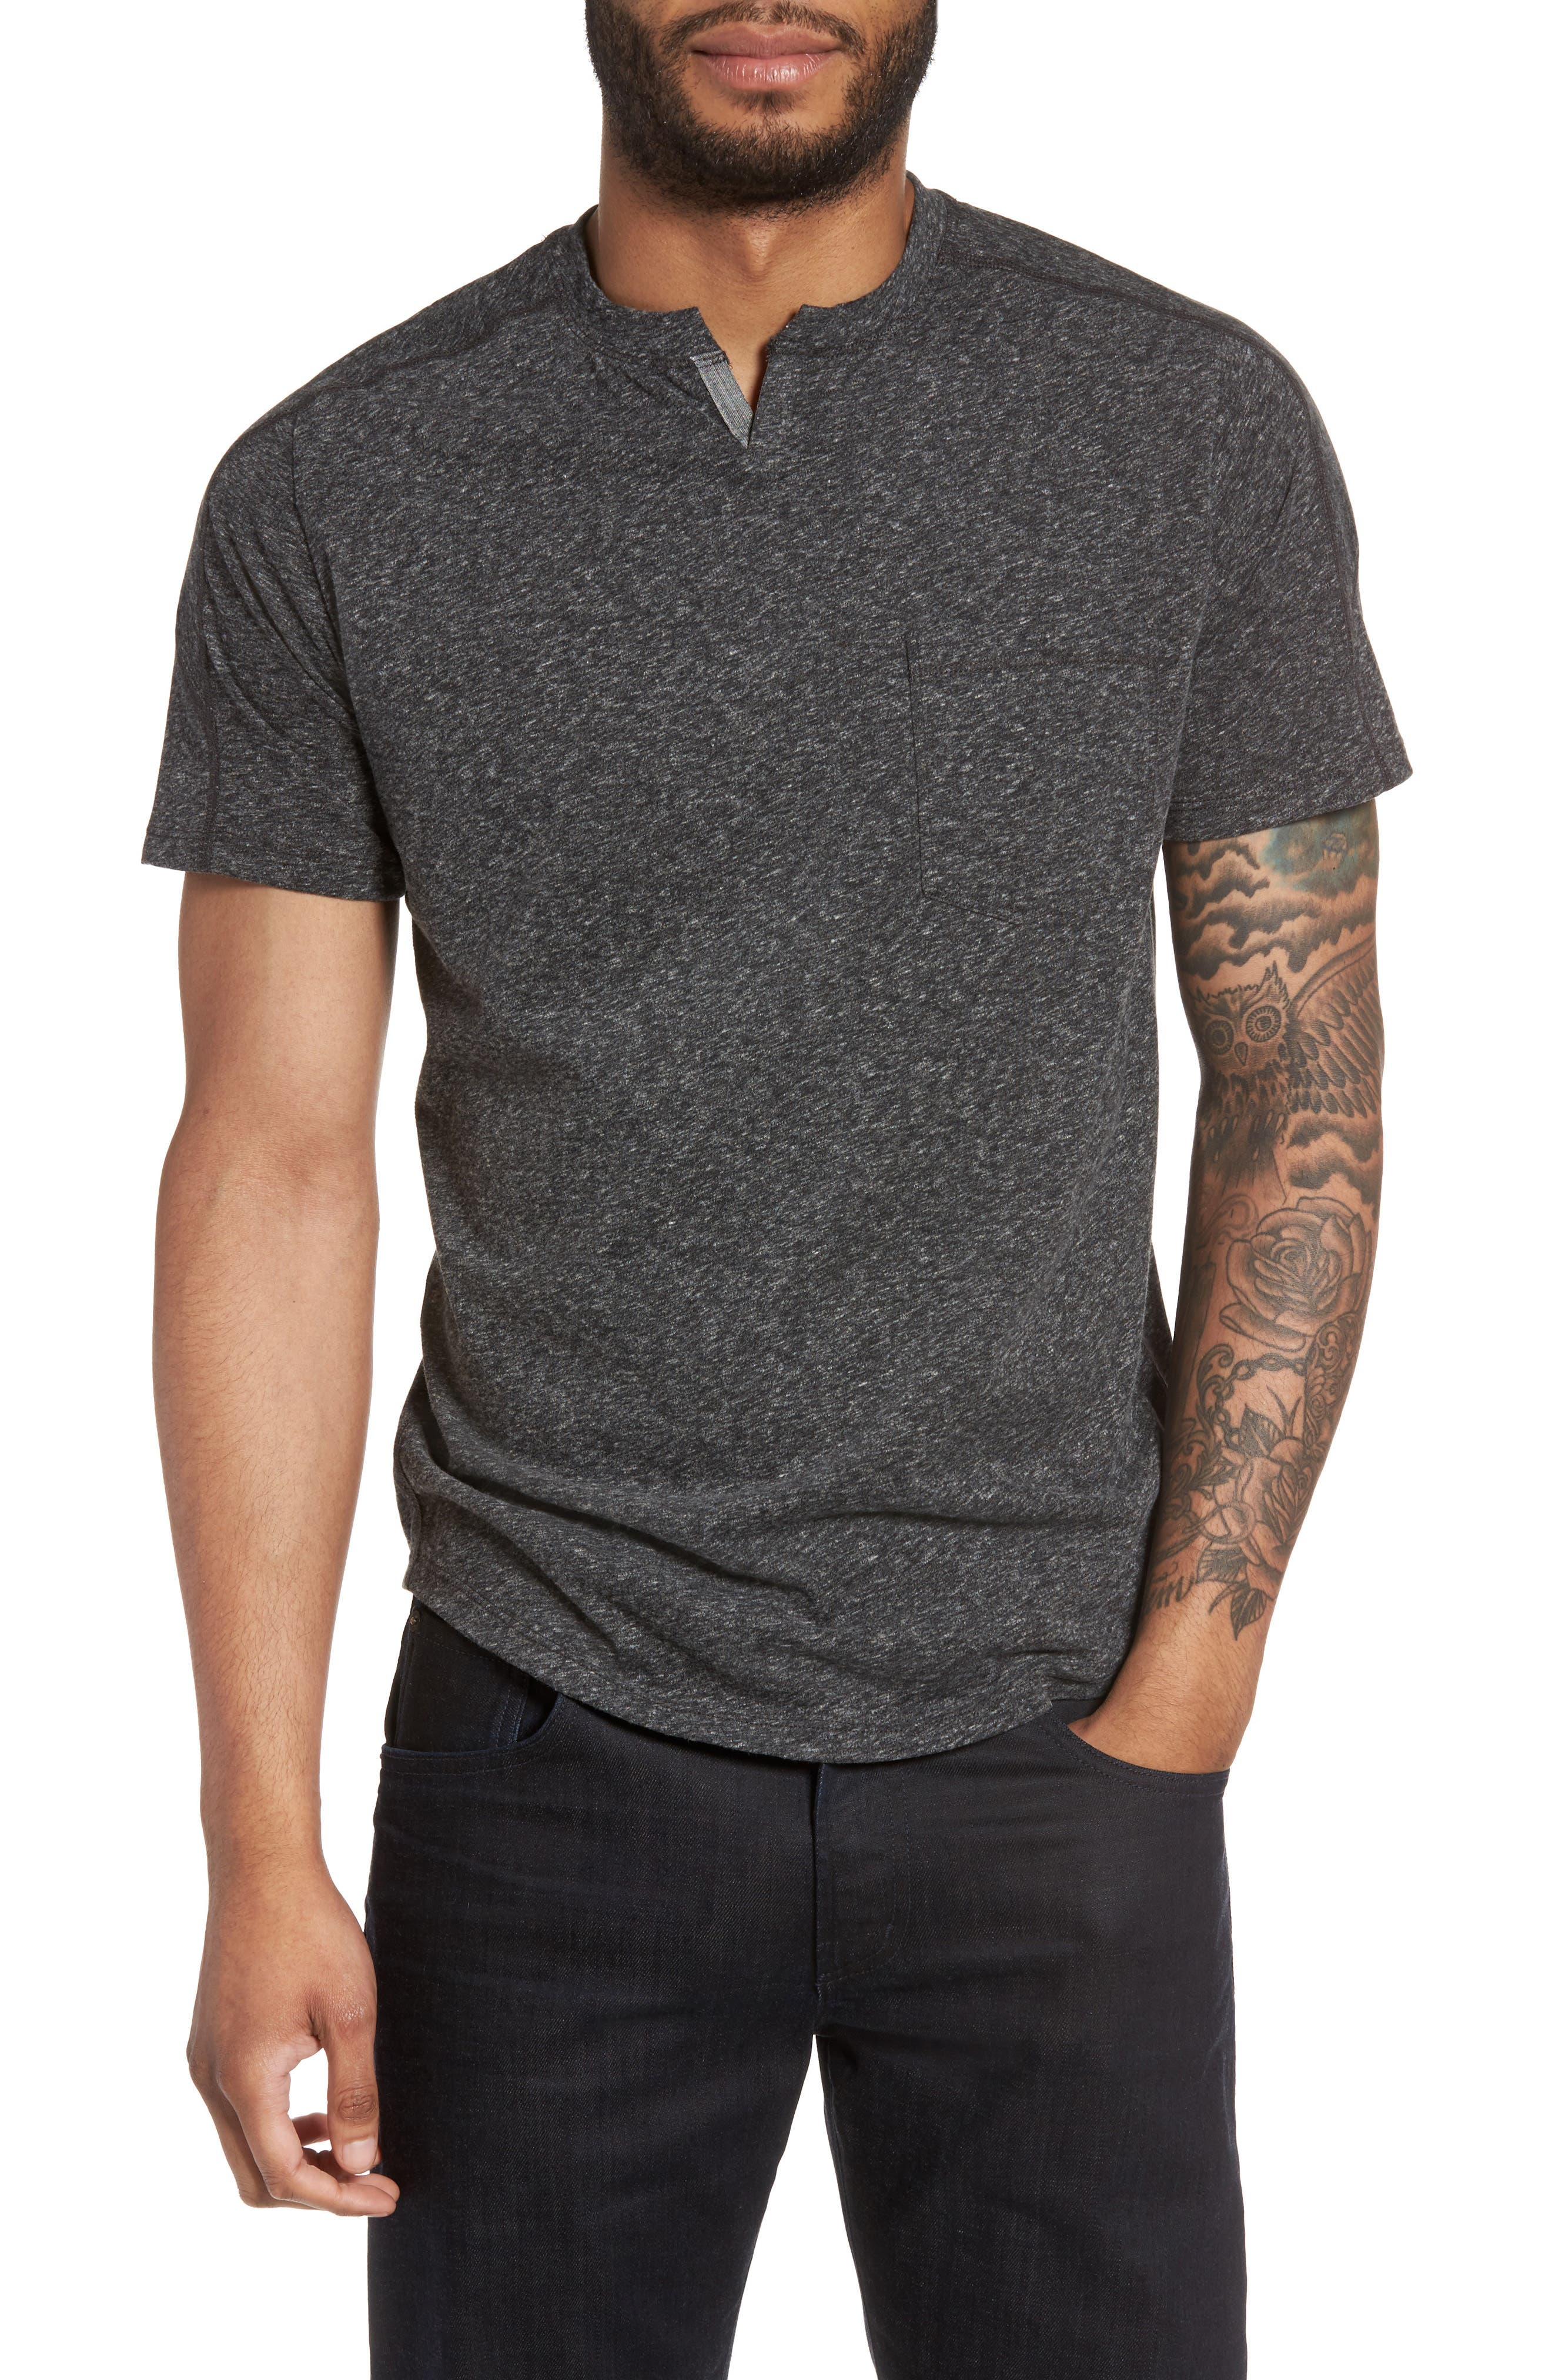 Good Man Brand Notch Neck T-Shirt